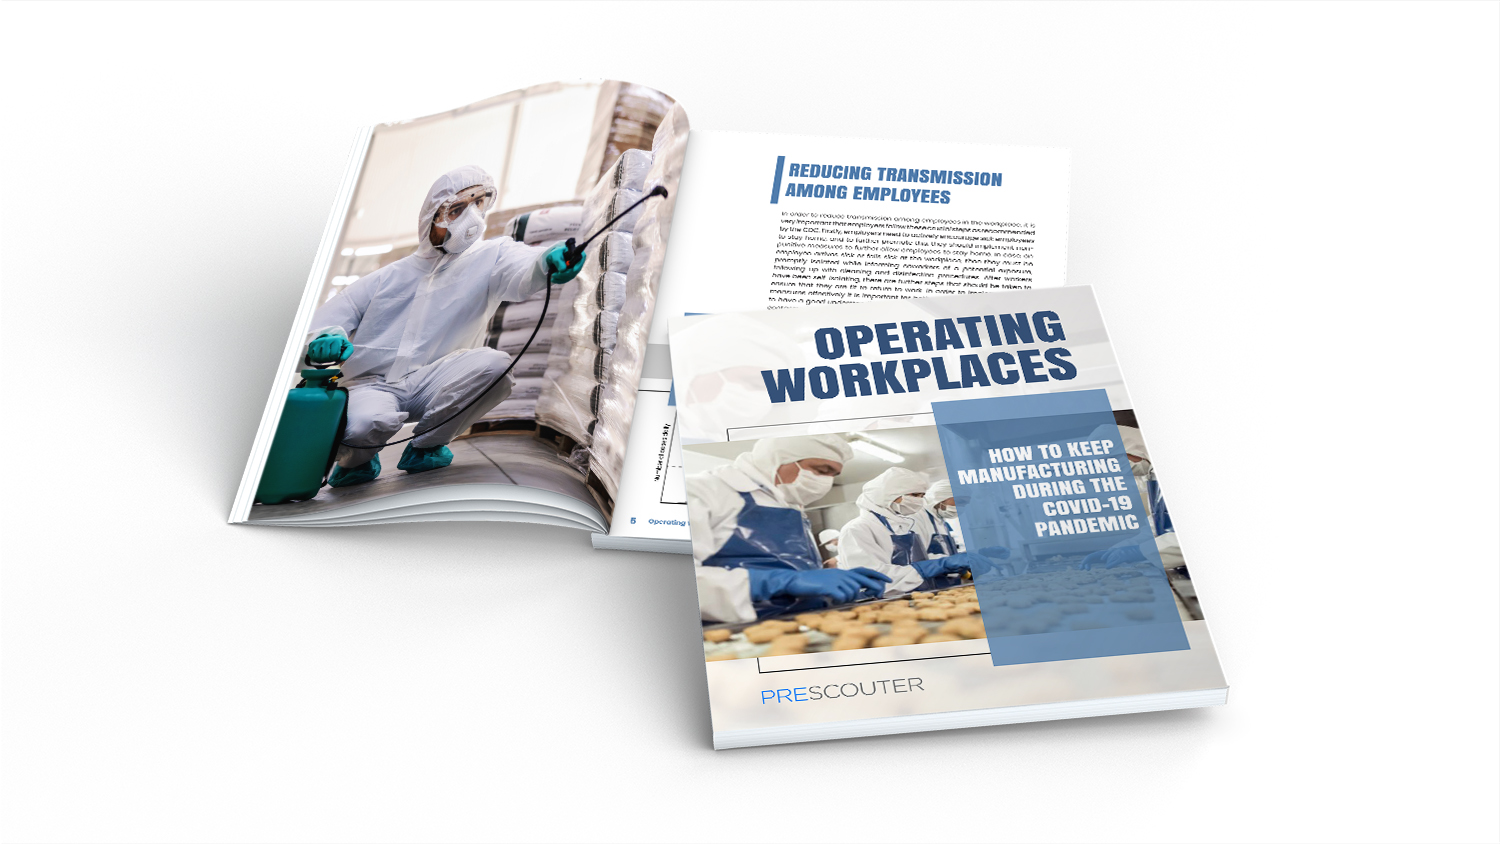 Operating Workplaces: How to keep manufacturing during the COVID-19 pandemic